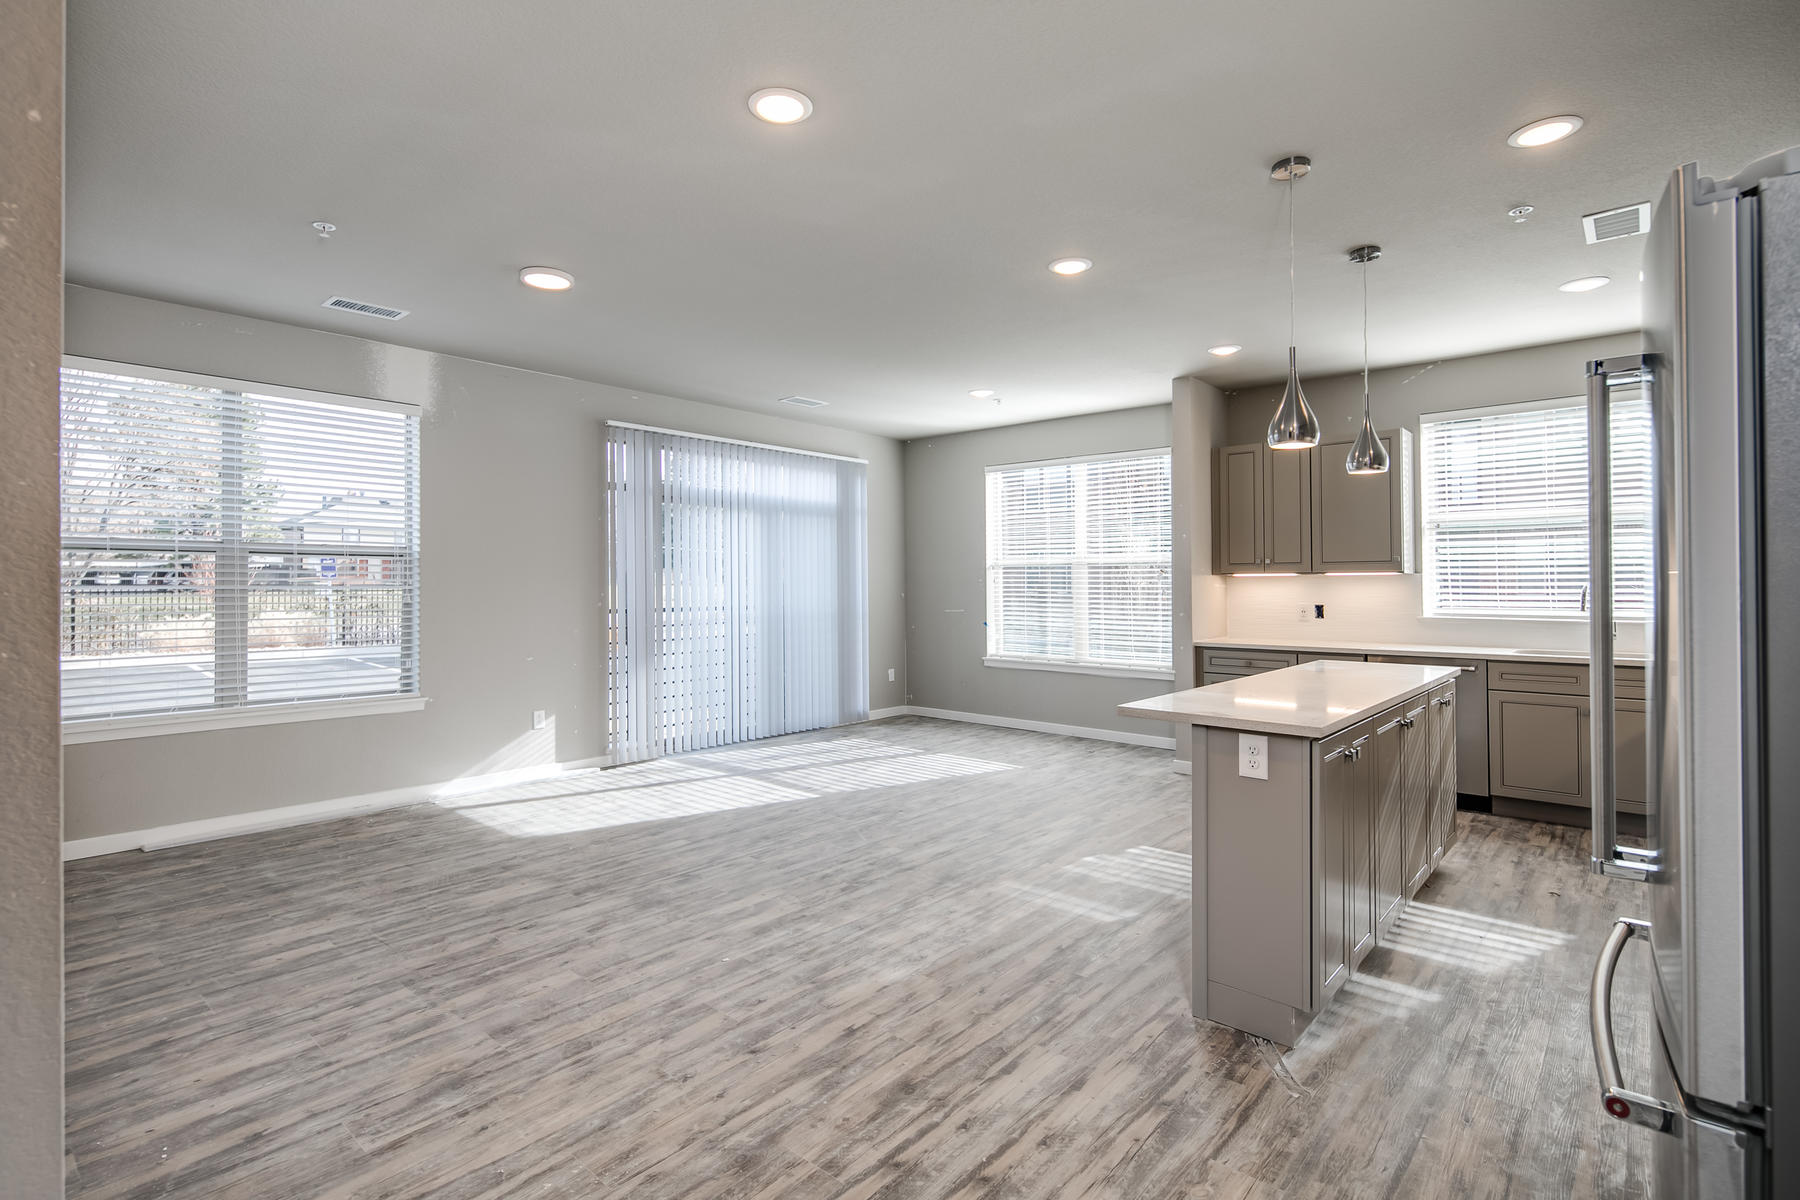 Additional photo for property listing at 155 South Monaco Parkway #312 155 S Monaco Pkwy #312 Denver, Colorado 80224 United States